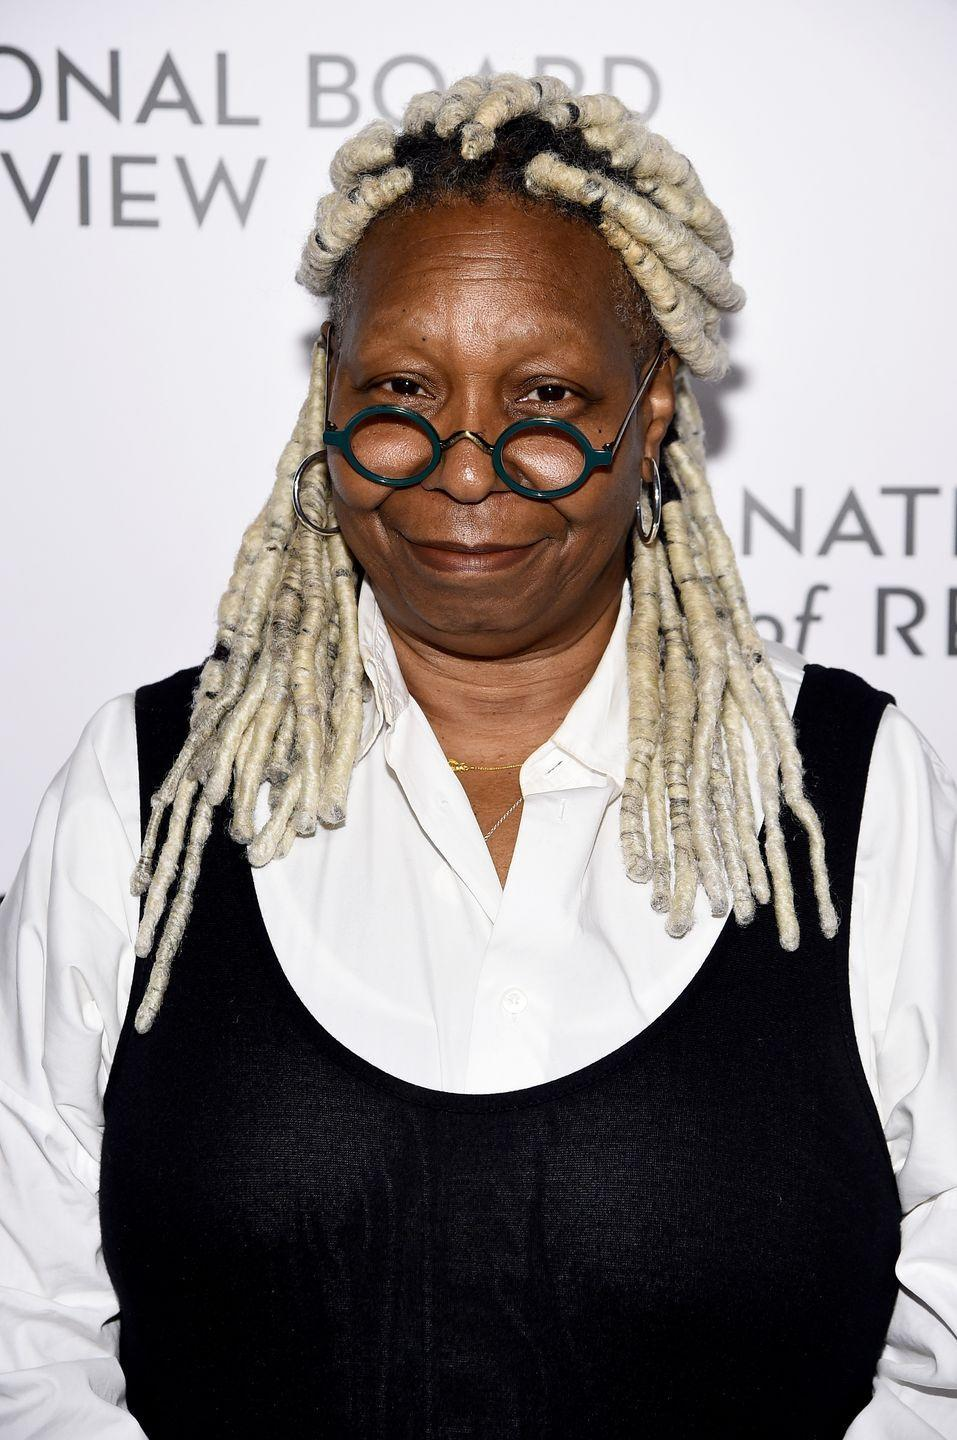 <p>Goldberg still has an extremely successful career today as an actress and co-host of <em>The View</em>. She has appeared in a few TV shows like <em>Glee</em> and <em>The Middle</em>, and signed on to reprise her role as Guinan during the second season of <em>Star Trek: Picard</em>.</p>